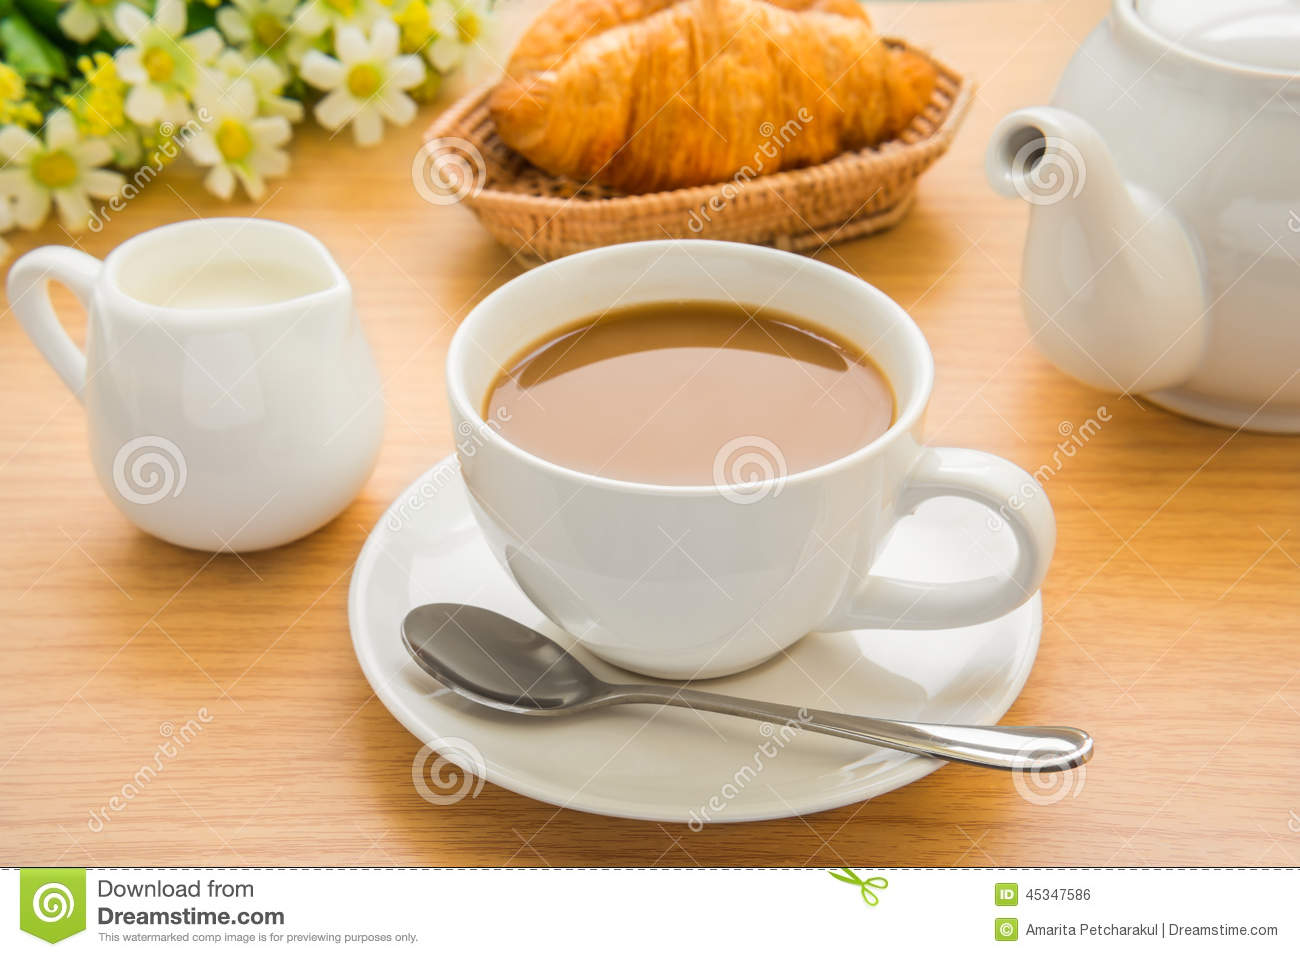 tasse de caf lait et croissant sur la table en bois photo stock image 45347586. Black Bedroom Furniture Sets. Home Design Ideas